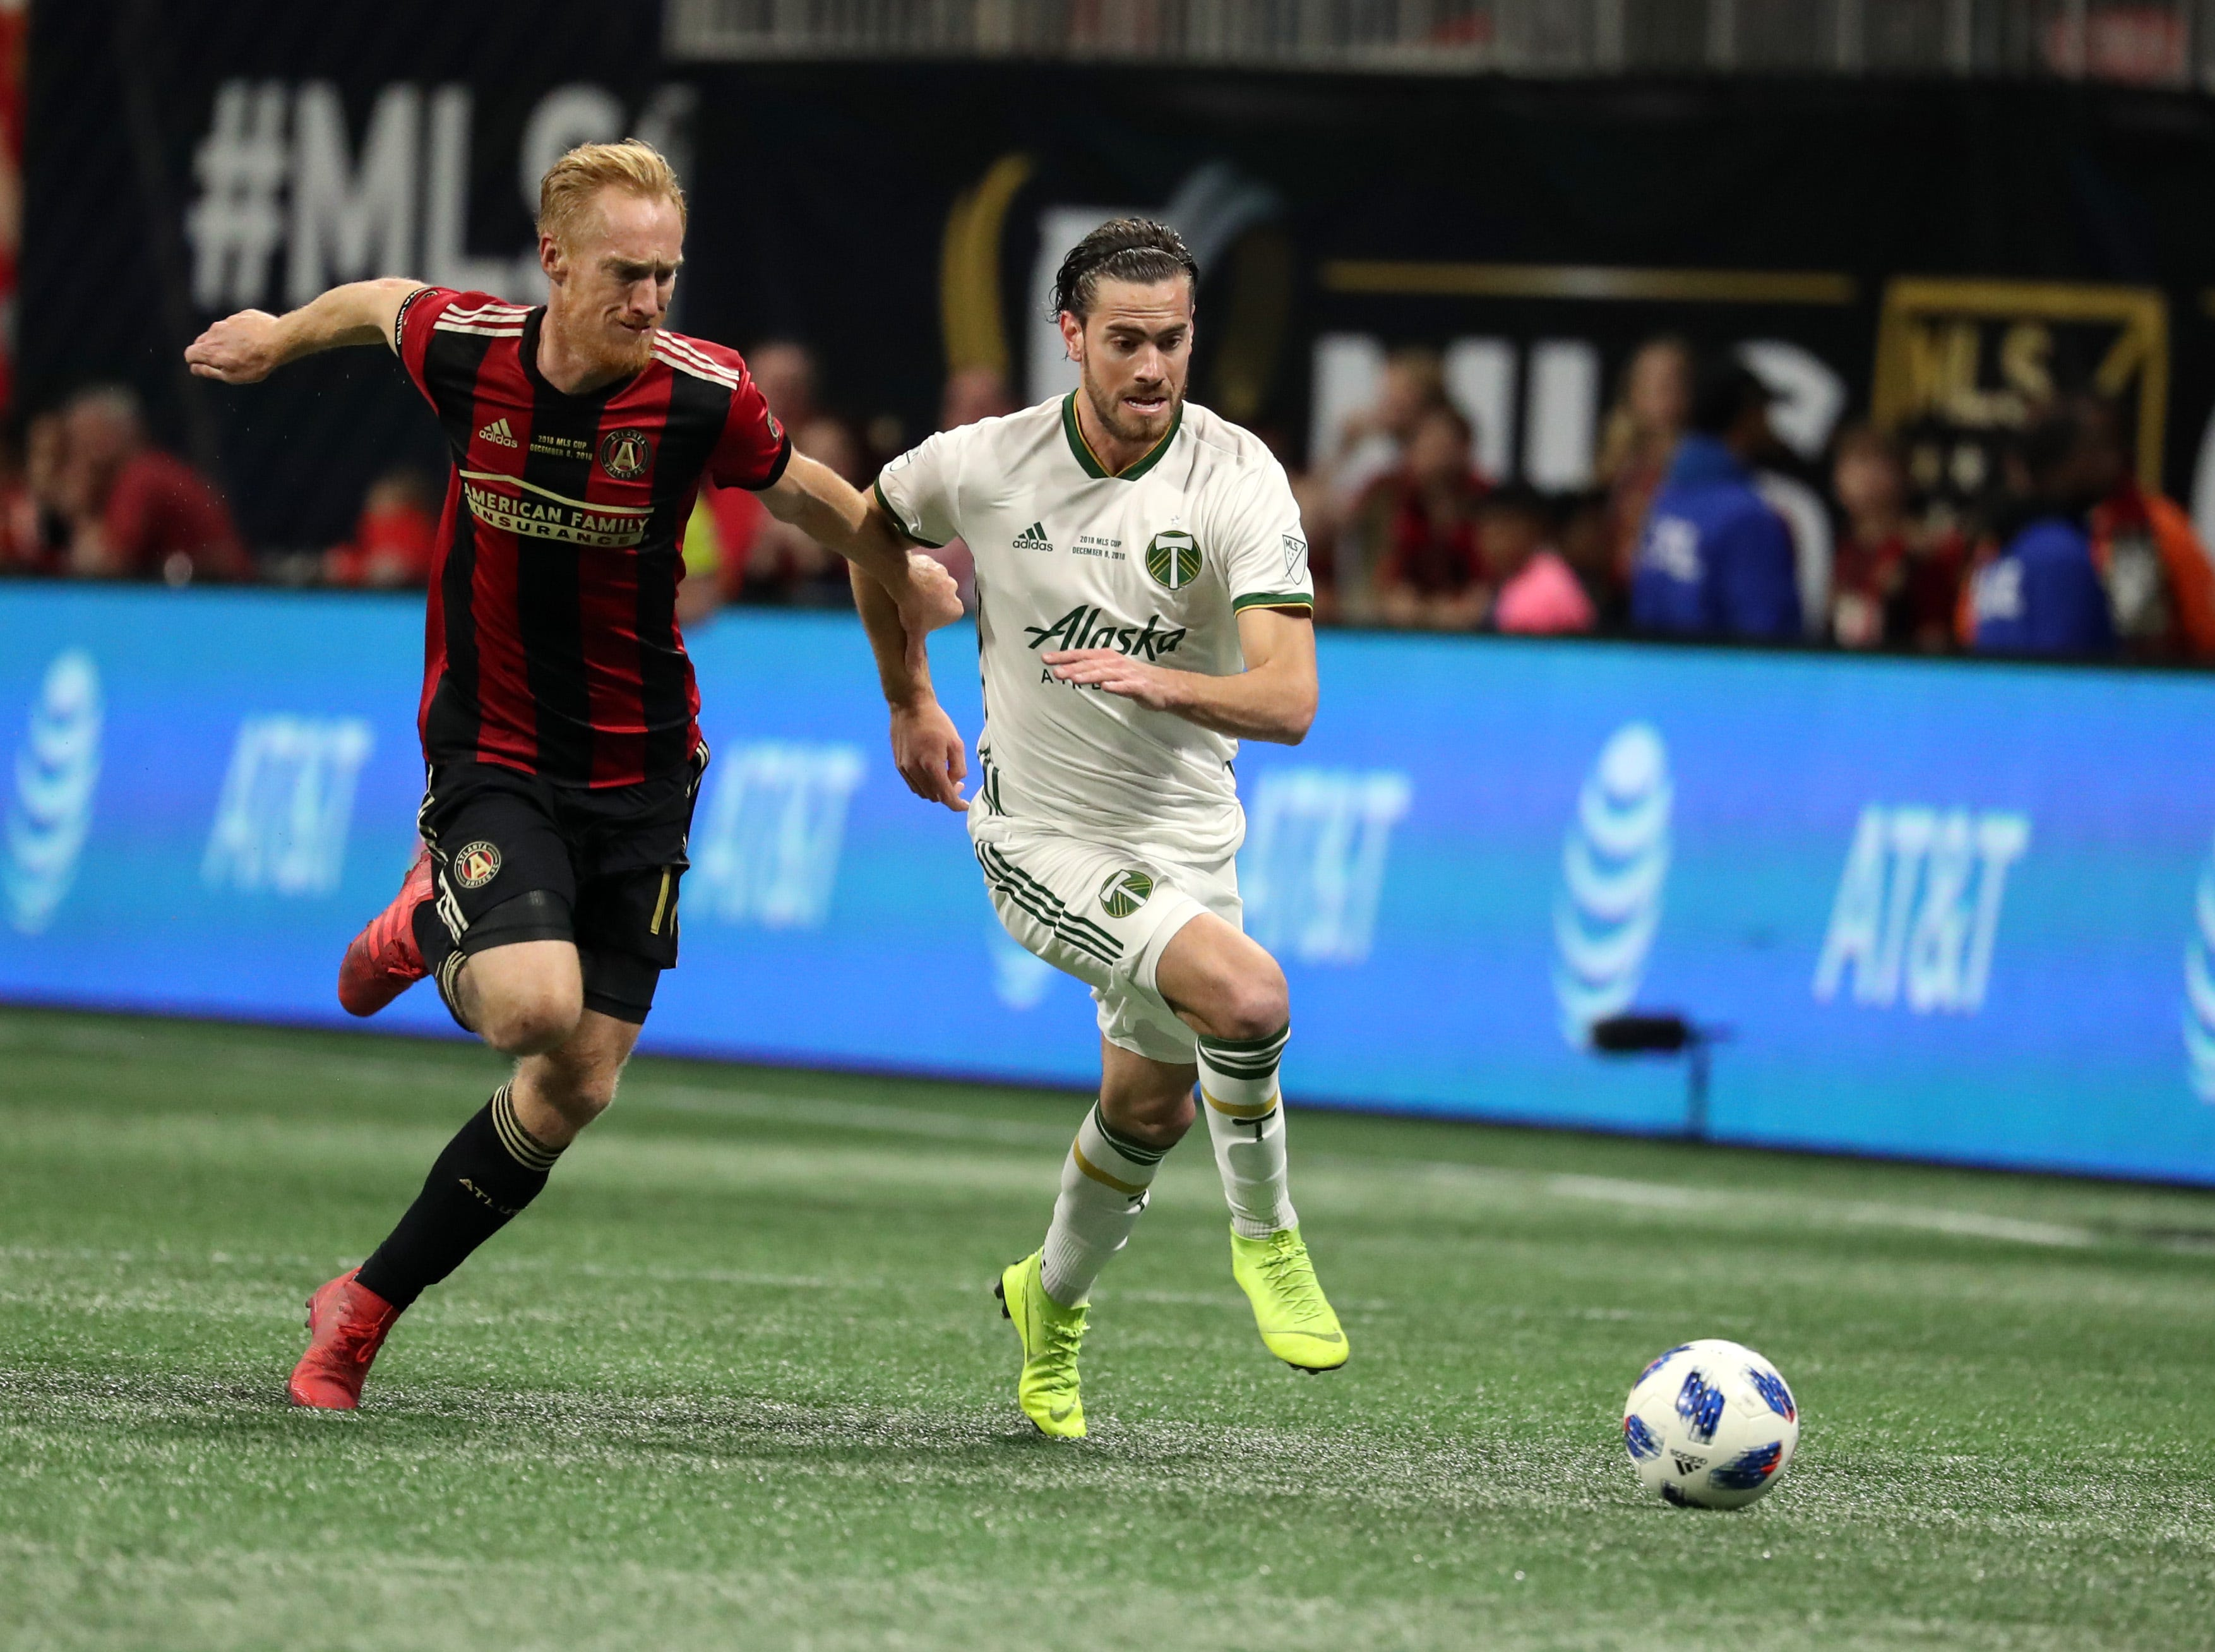 Portland Timbers forward Lucas Melano (26) outruns Atlanta United defender Jeff Larentowicz for the ball during the second half in the 2018 MLS Cup.